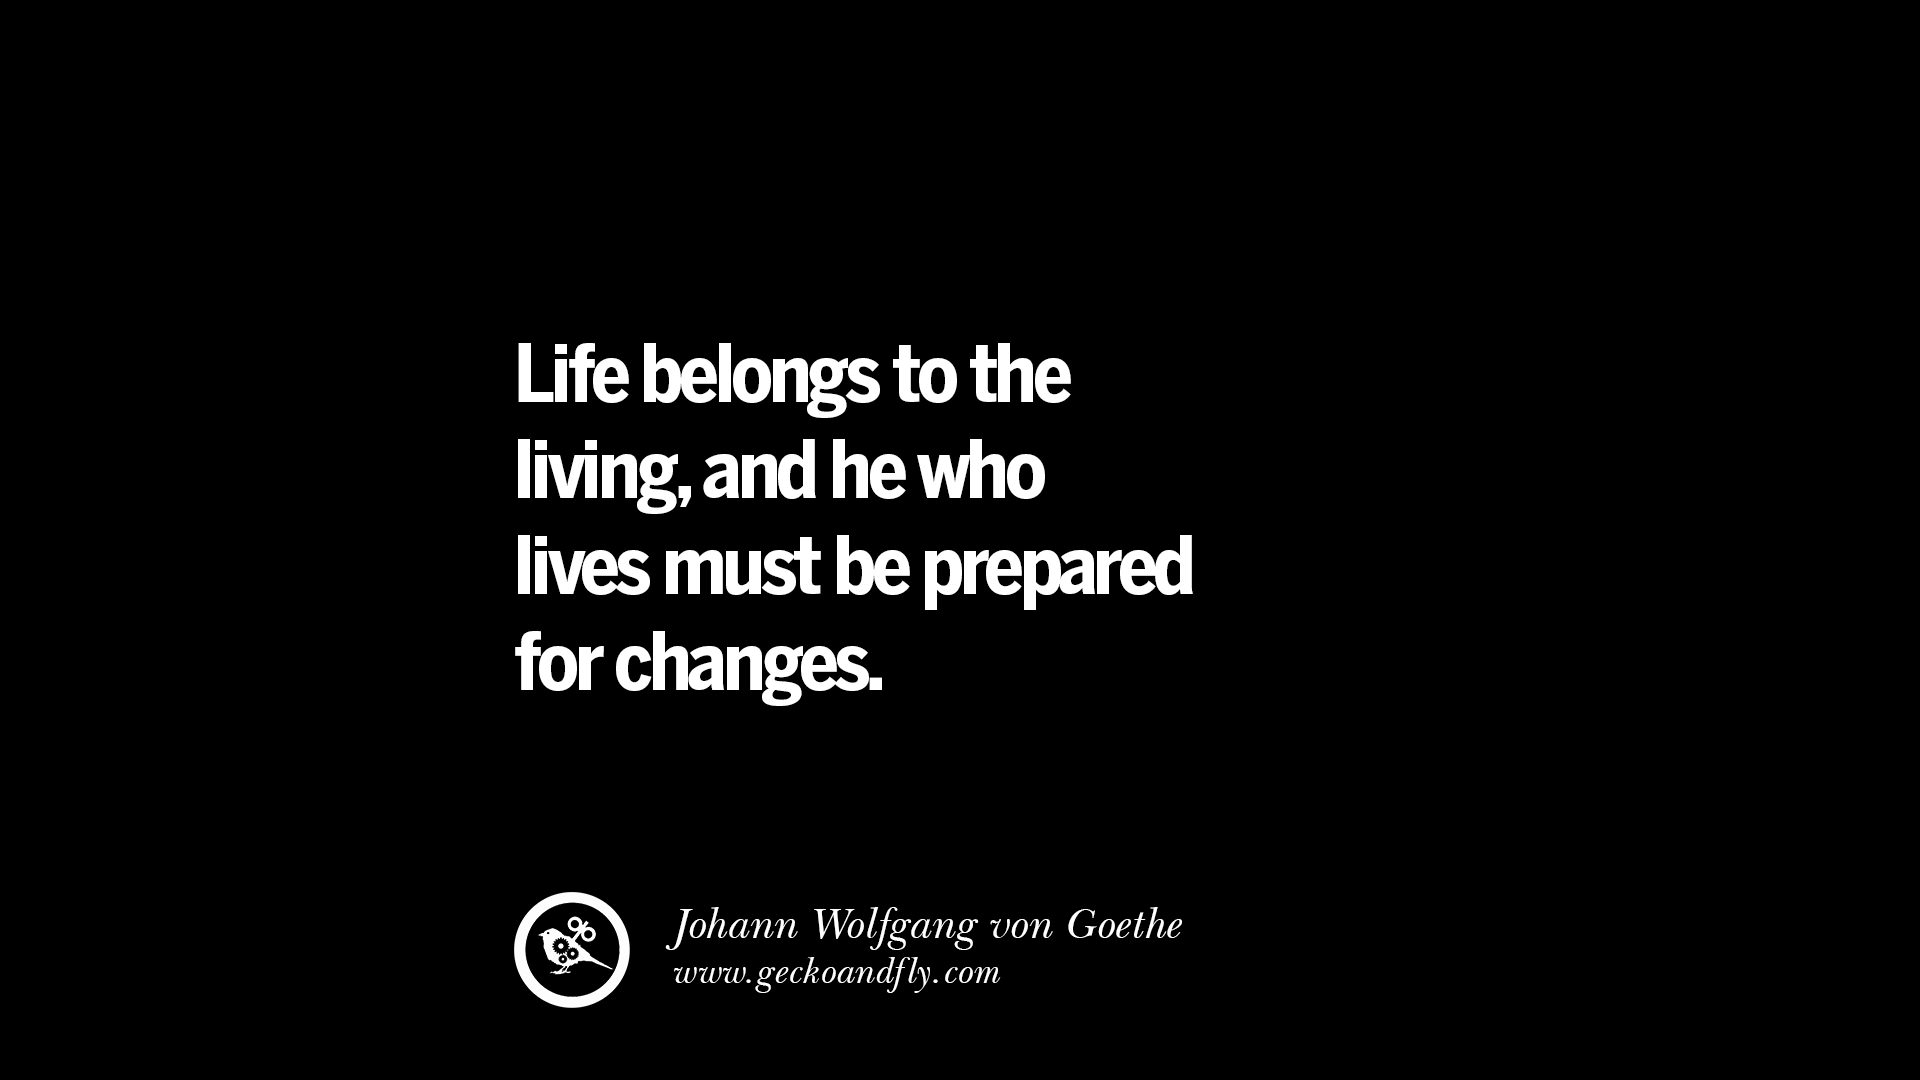 Quotes On Changes In Life 45 Quotes On Change And Changing Our Attitudes  Geckoandfly 2018